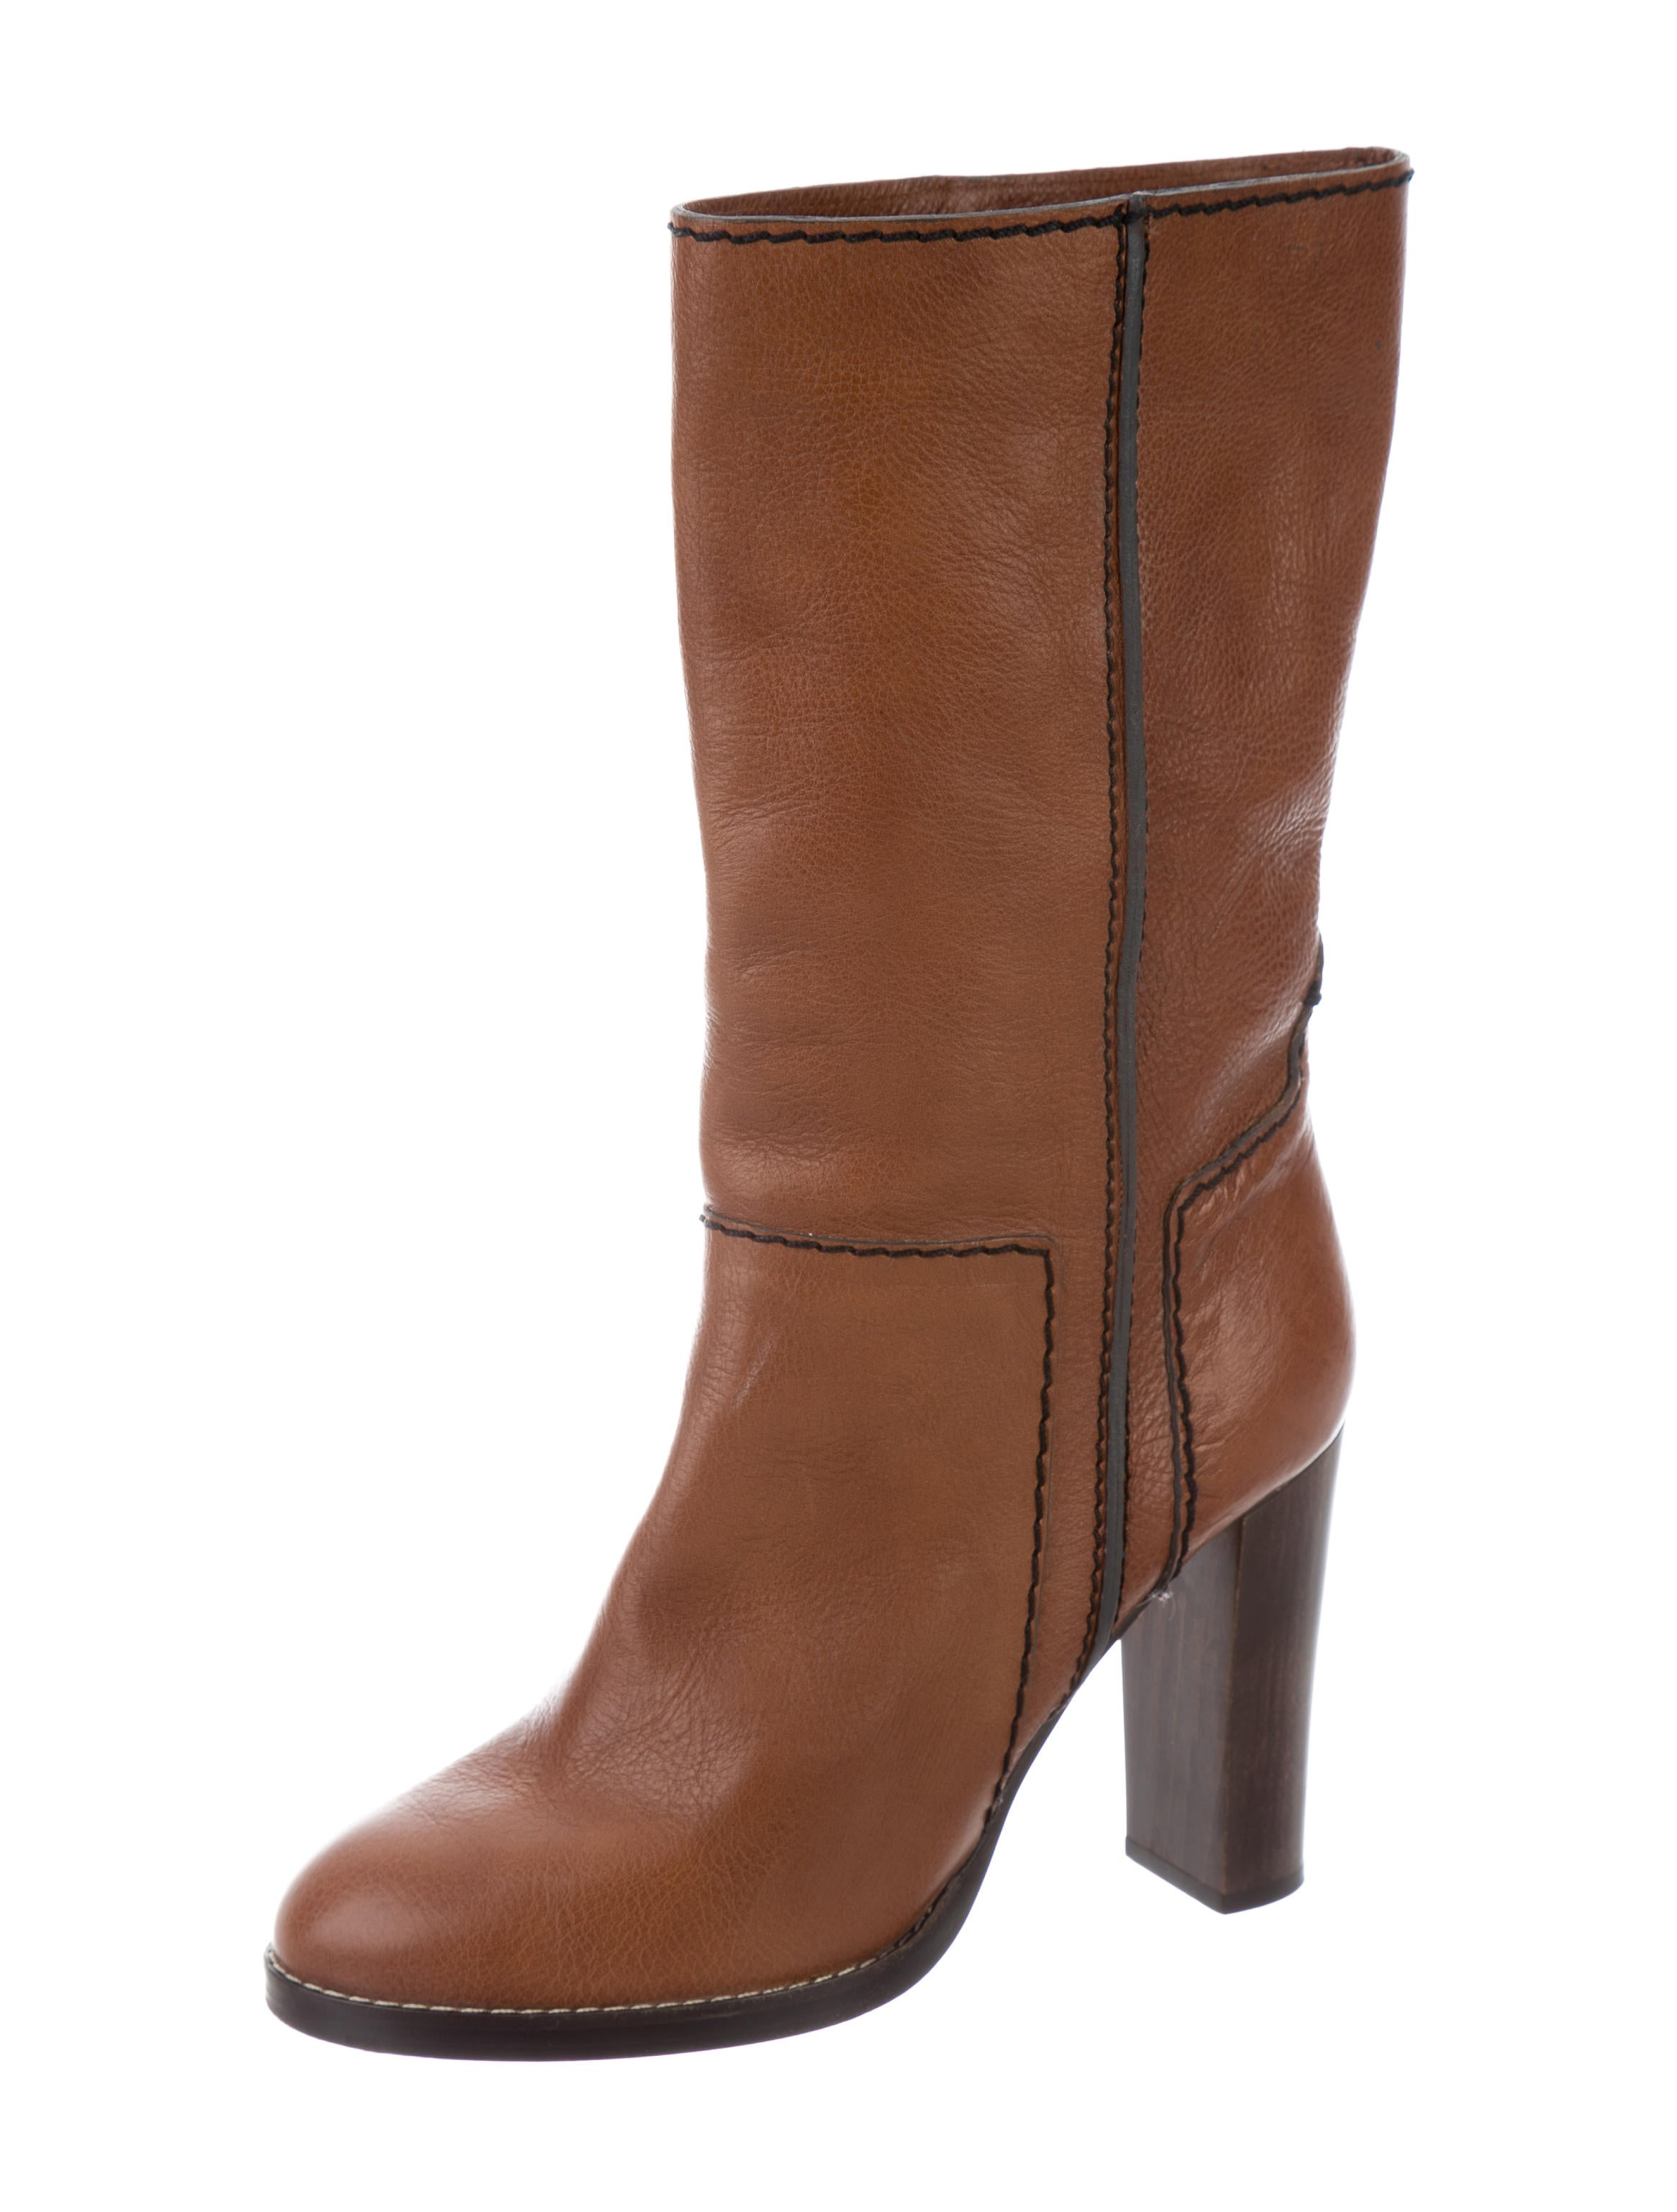 chlo 233 leather mid calf boots shoes chl58913 the realreal